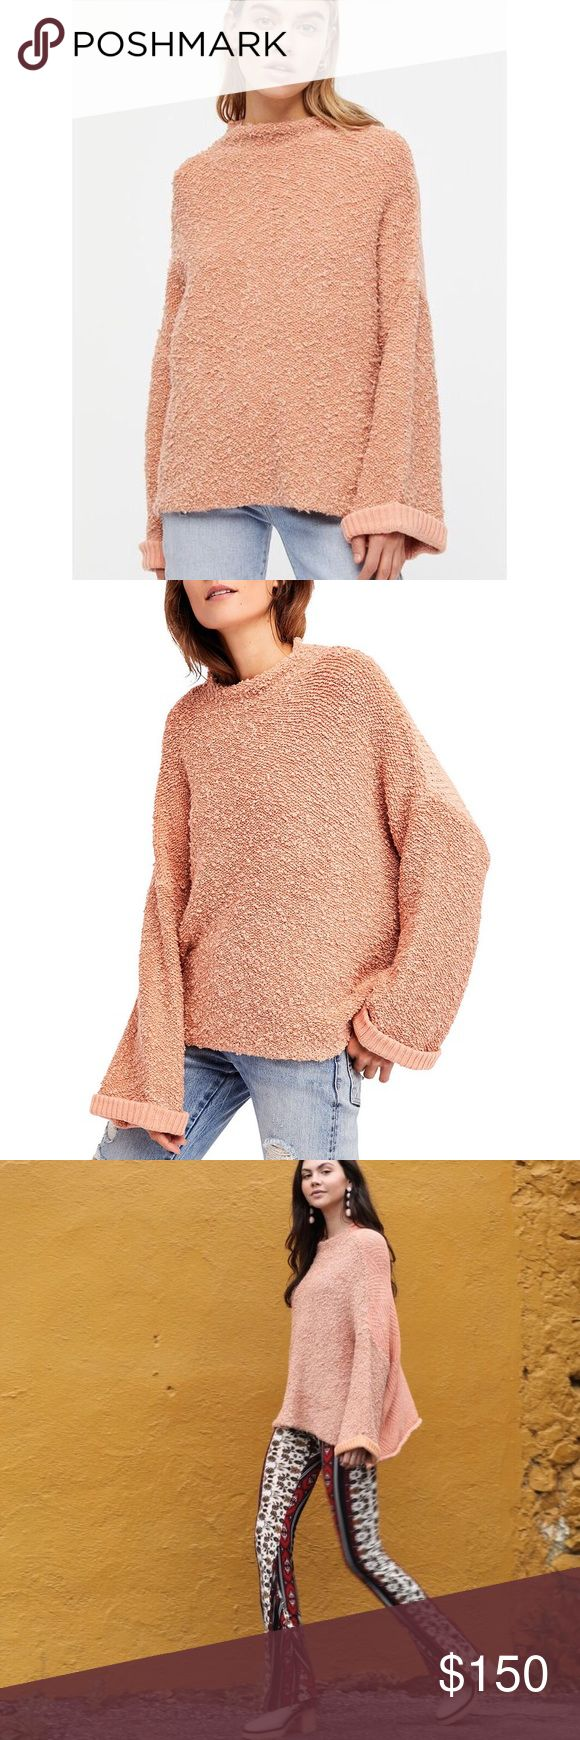 "Free People Sweater 100% authentic! Brand new with tags 💓   My boutique rules:  1. no commenting about price 2. No self advertising  3. No rude comments  4.) No advertising of other stores (such as you can find this at ""store"" for more or less) 5. No additional photos  Let's keep a positive atmosphere ! If you don't like the listing please move on. (You will be blocked and no longer allowed to shop at my boutique if any rule is broken.) Free People Sweaters Crew & Scoop Necks"